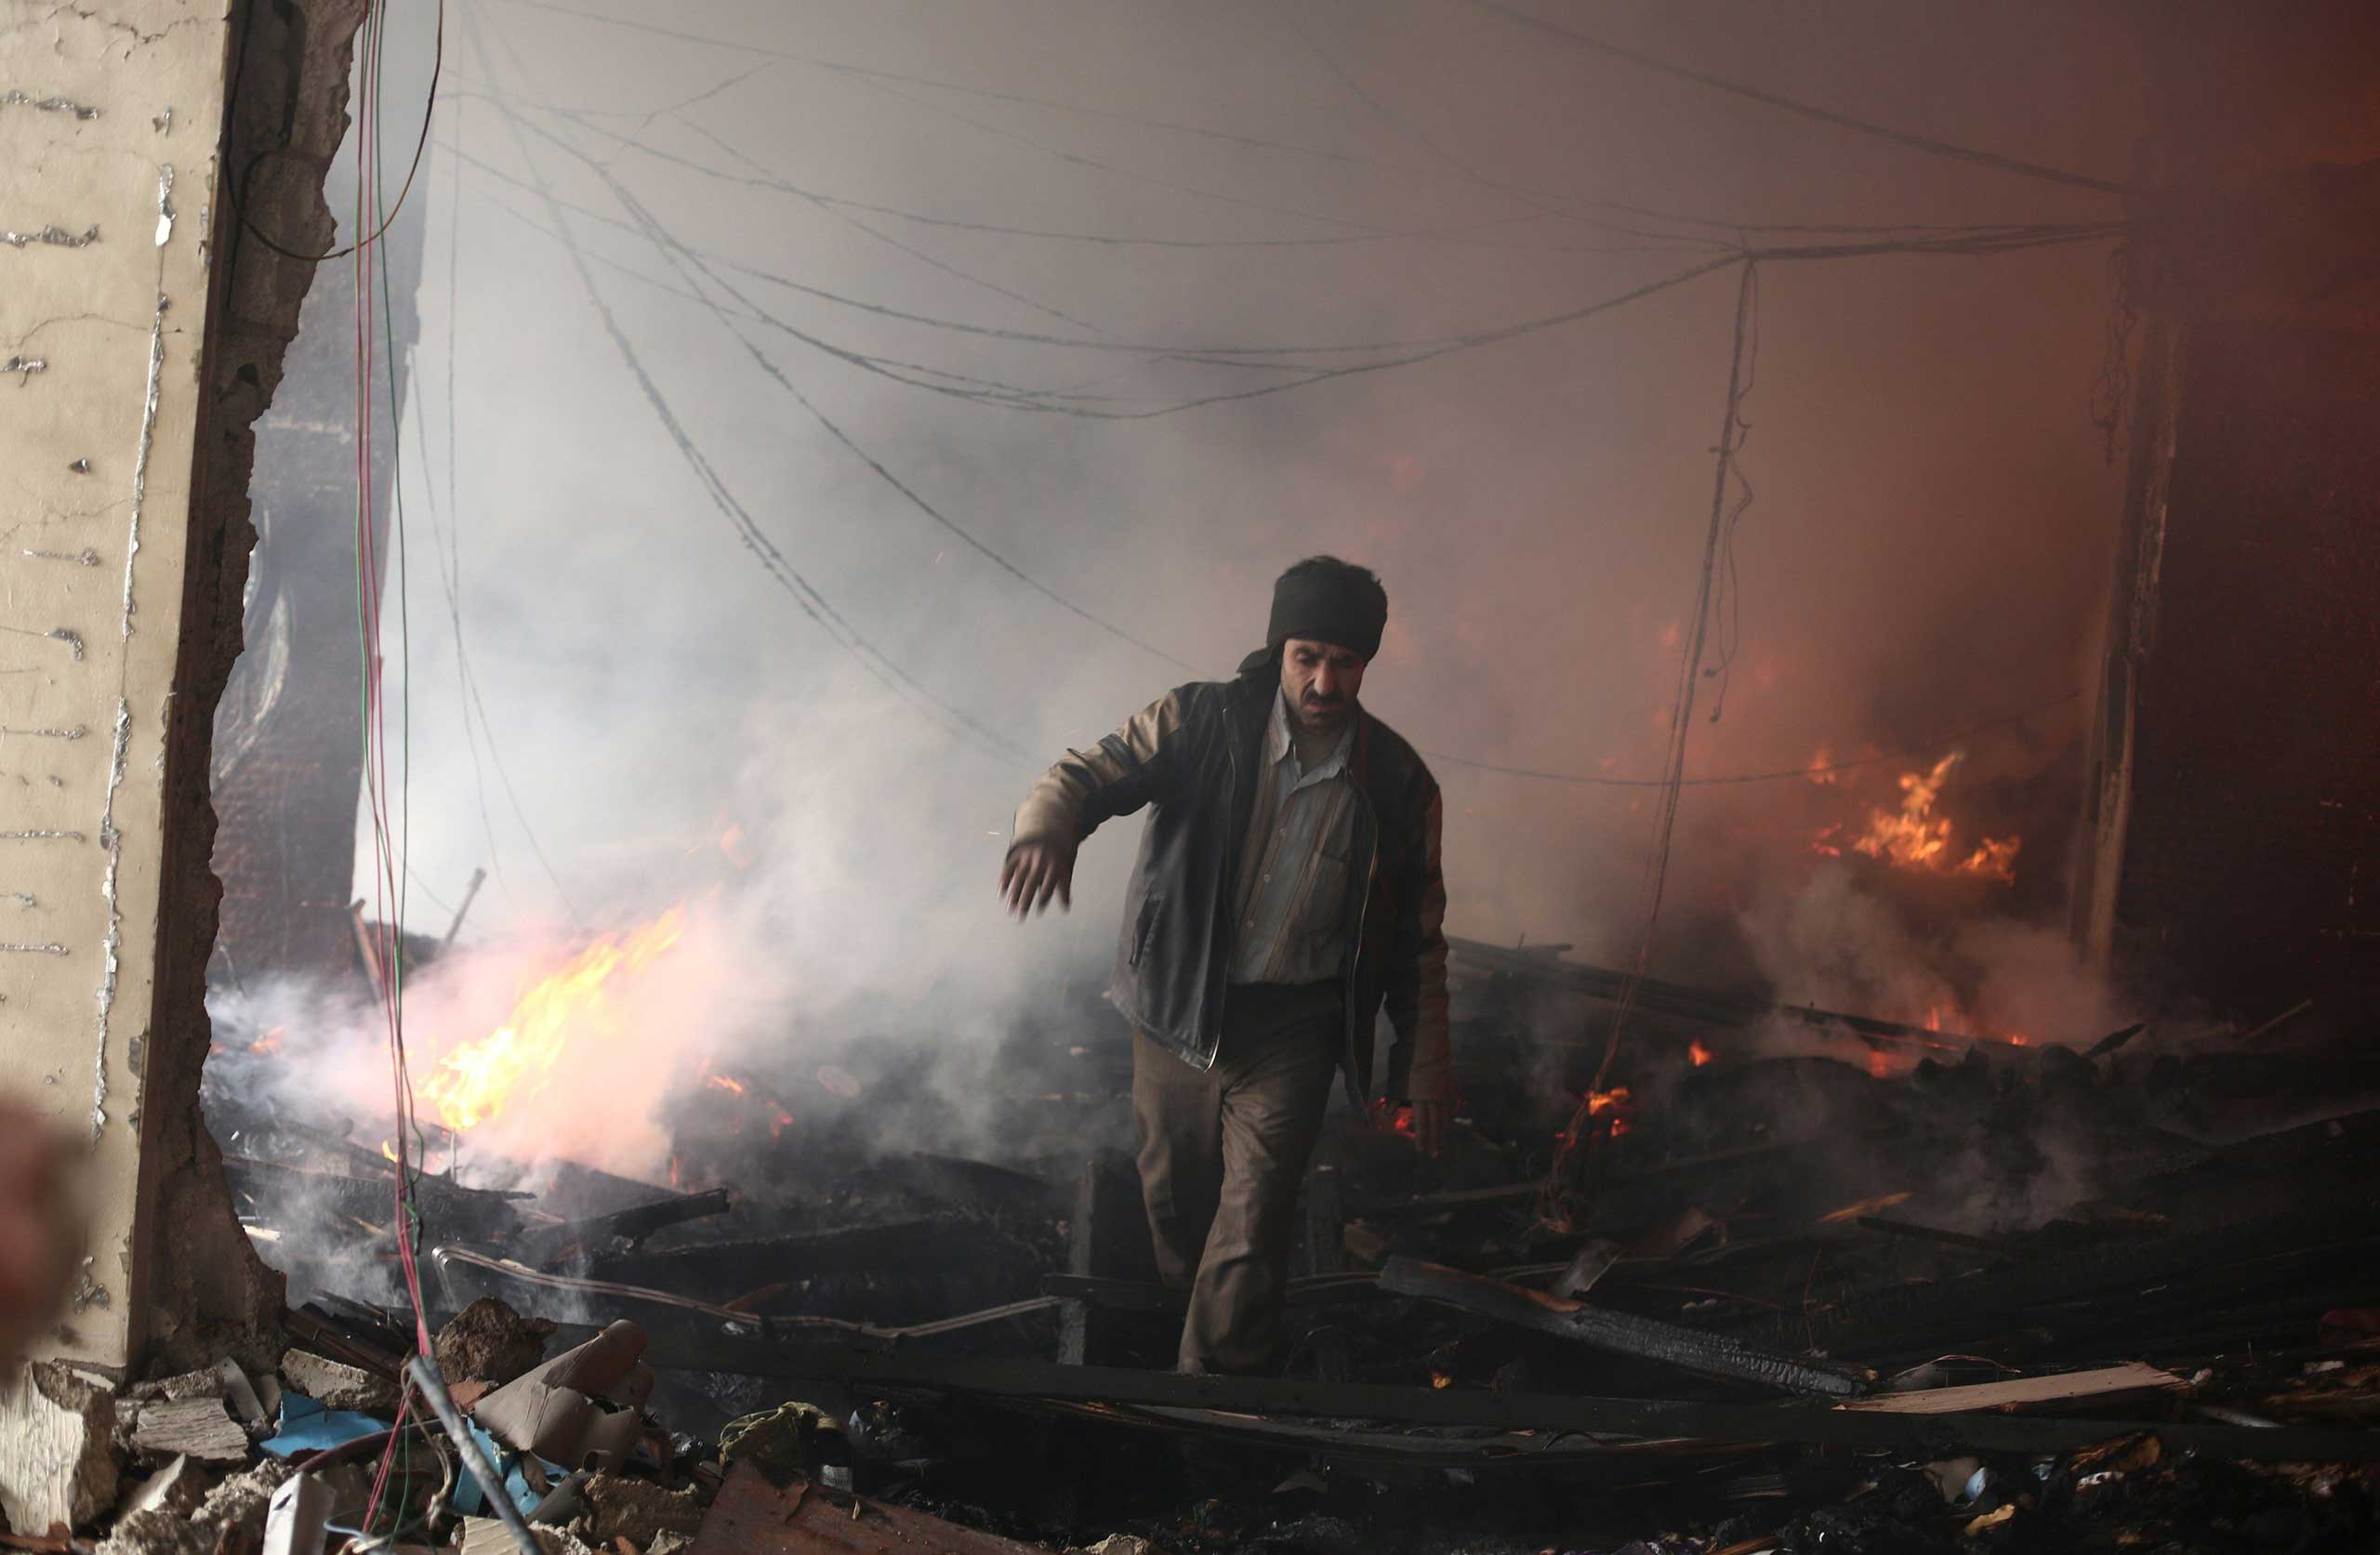 A Syrian man walks amid debris inside a heavily damaged building following reported air strikes by regime forces in the Douma neighborhood of Damascus, on Feb. 9, 2015.